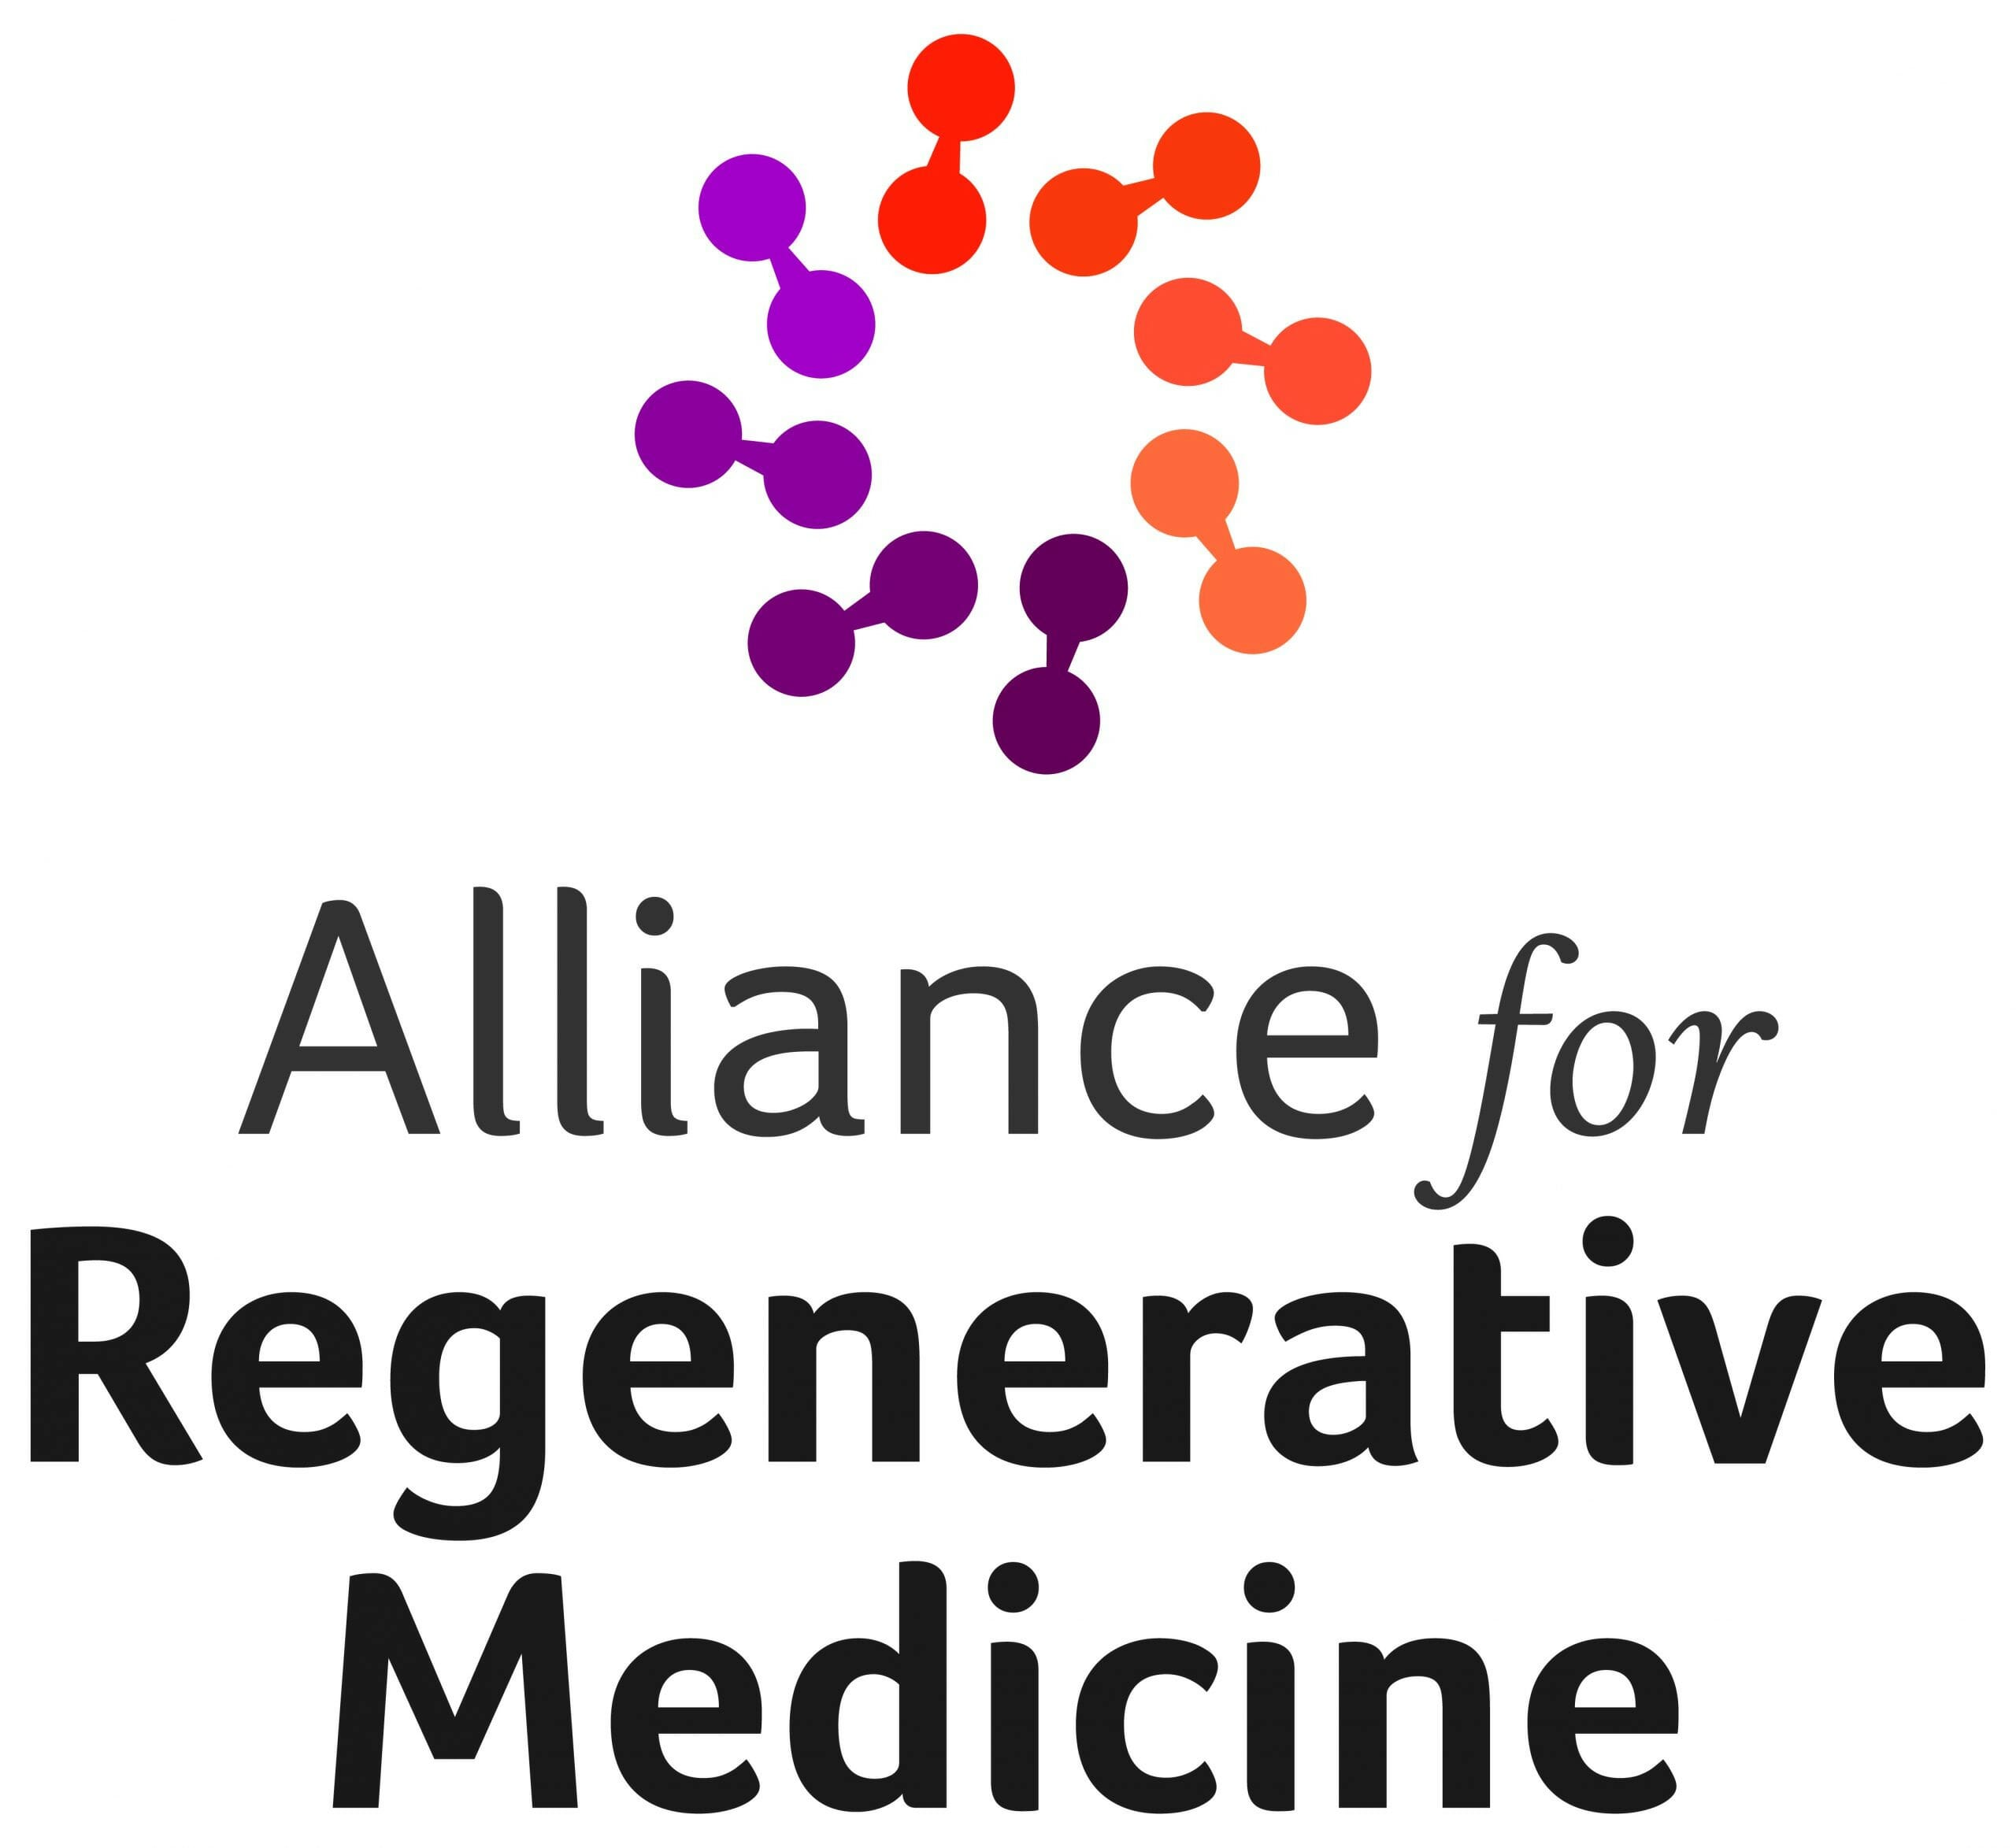 Alliance for Regenerative Medicine logo